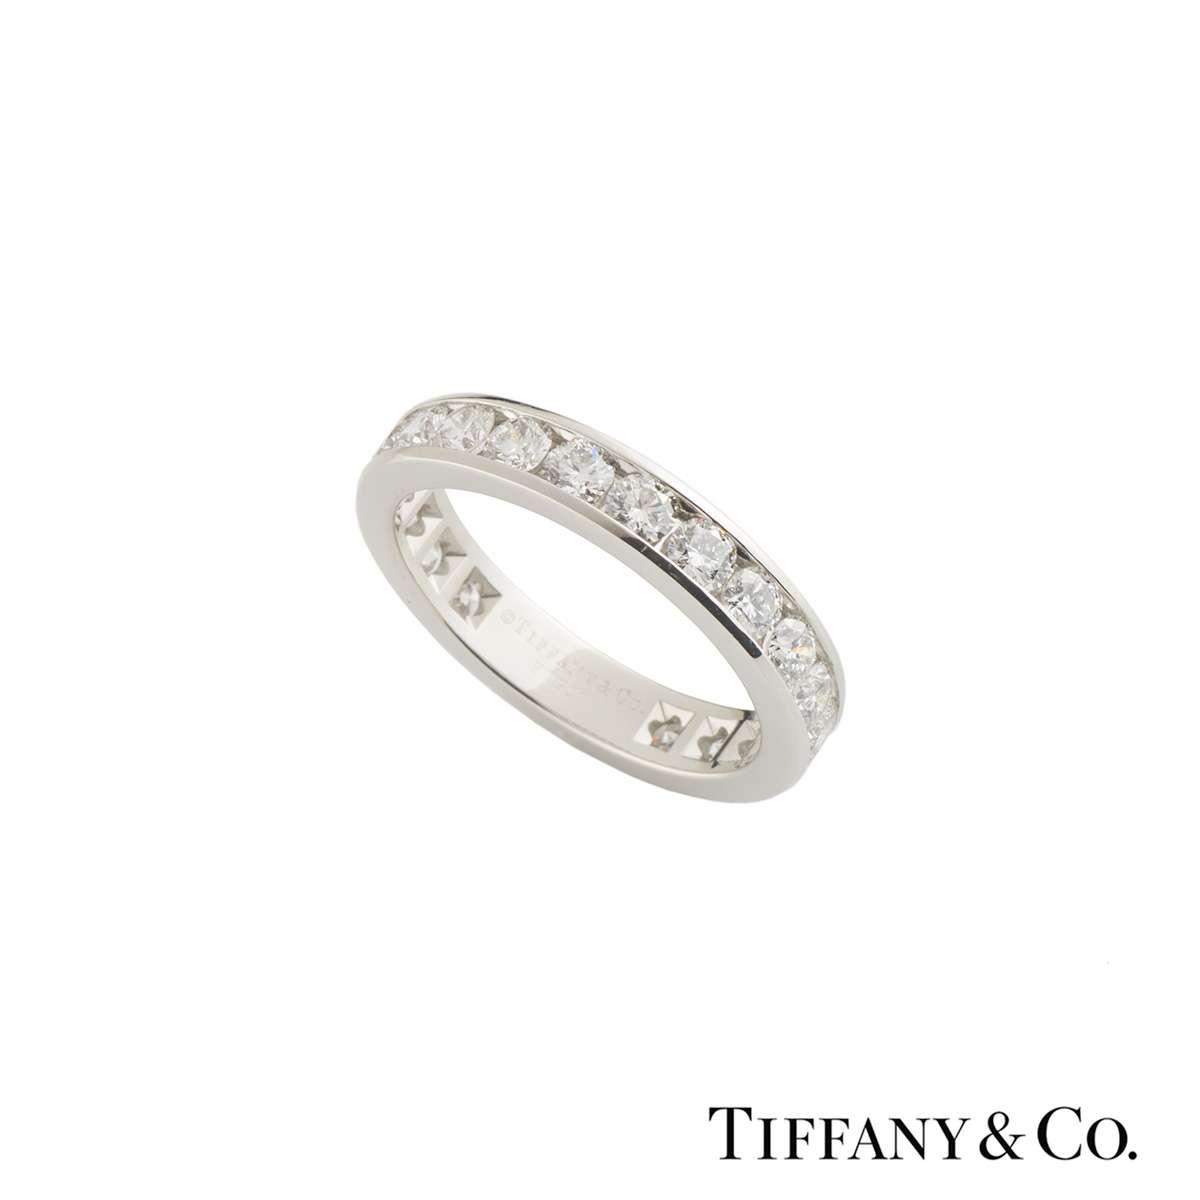 Tiffany & Co. Platinum Diamond Wedding Band 1.98ct G-H/VS2